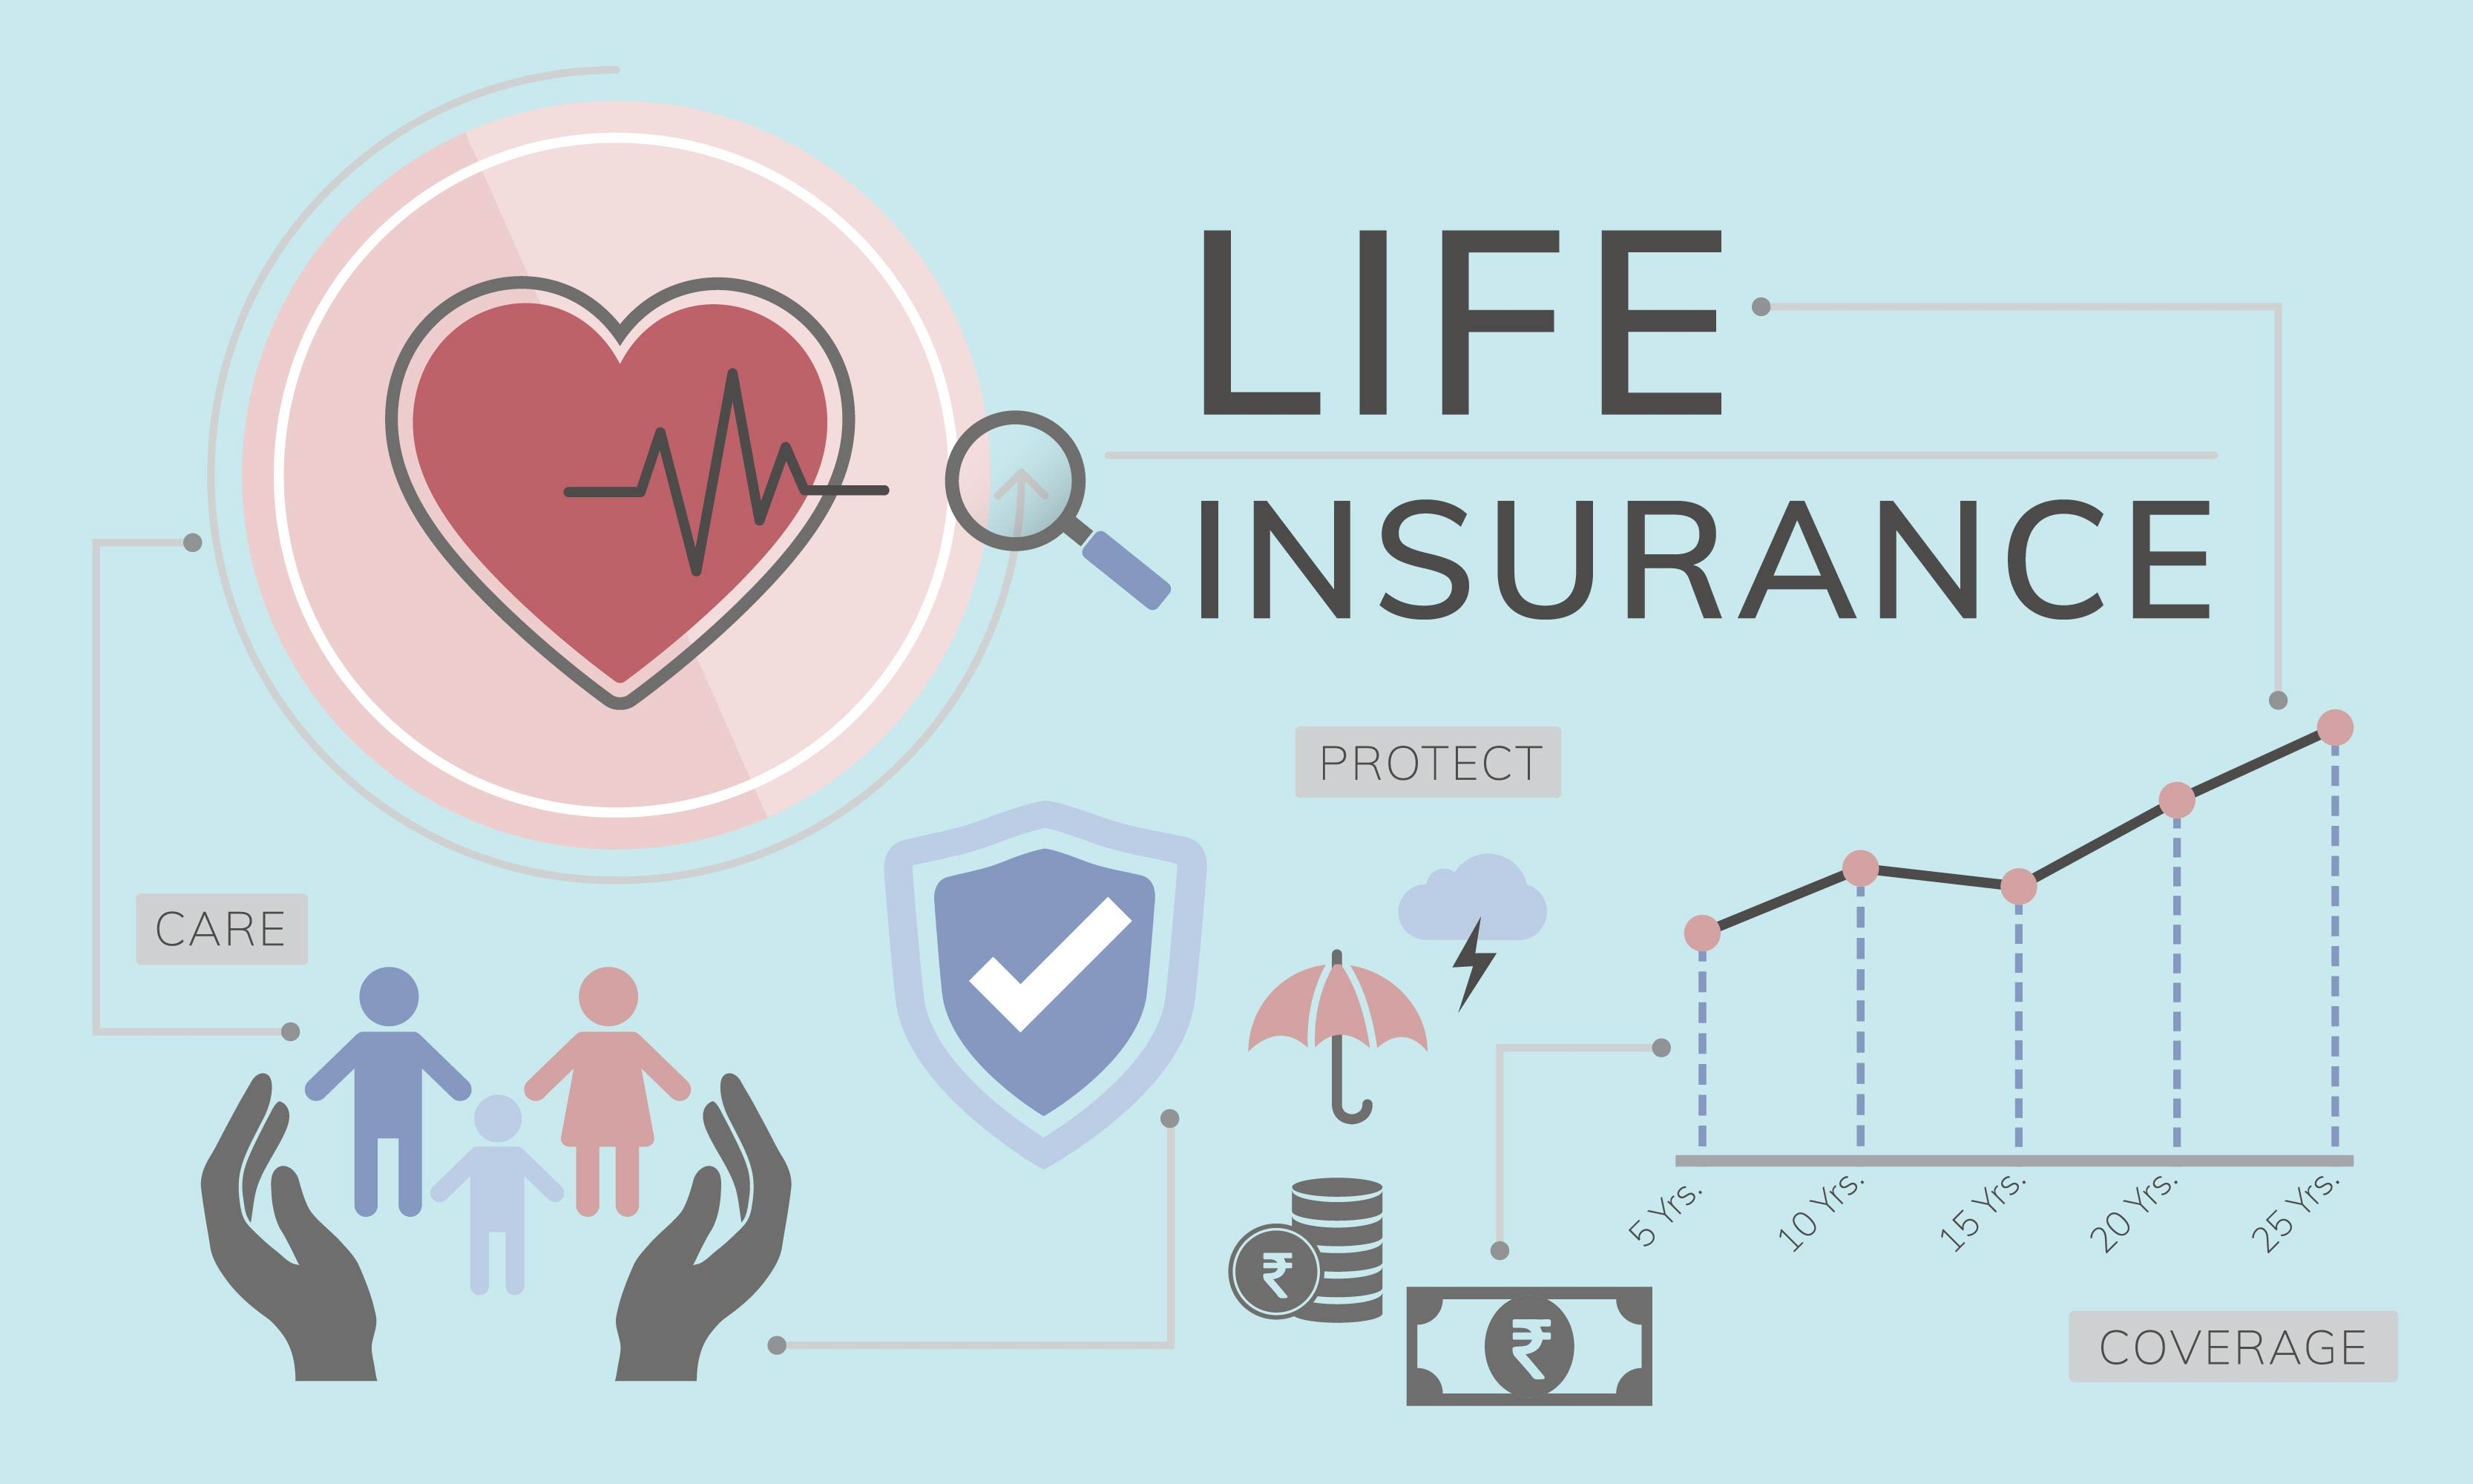 Life Insurance as an Investment